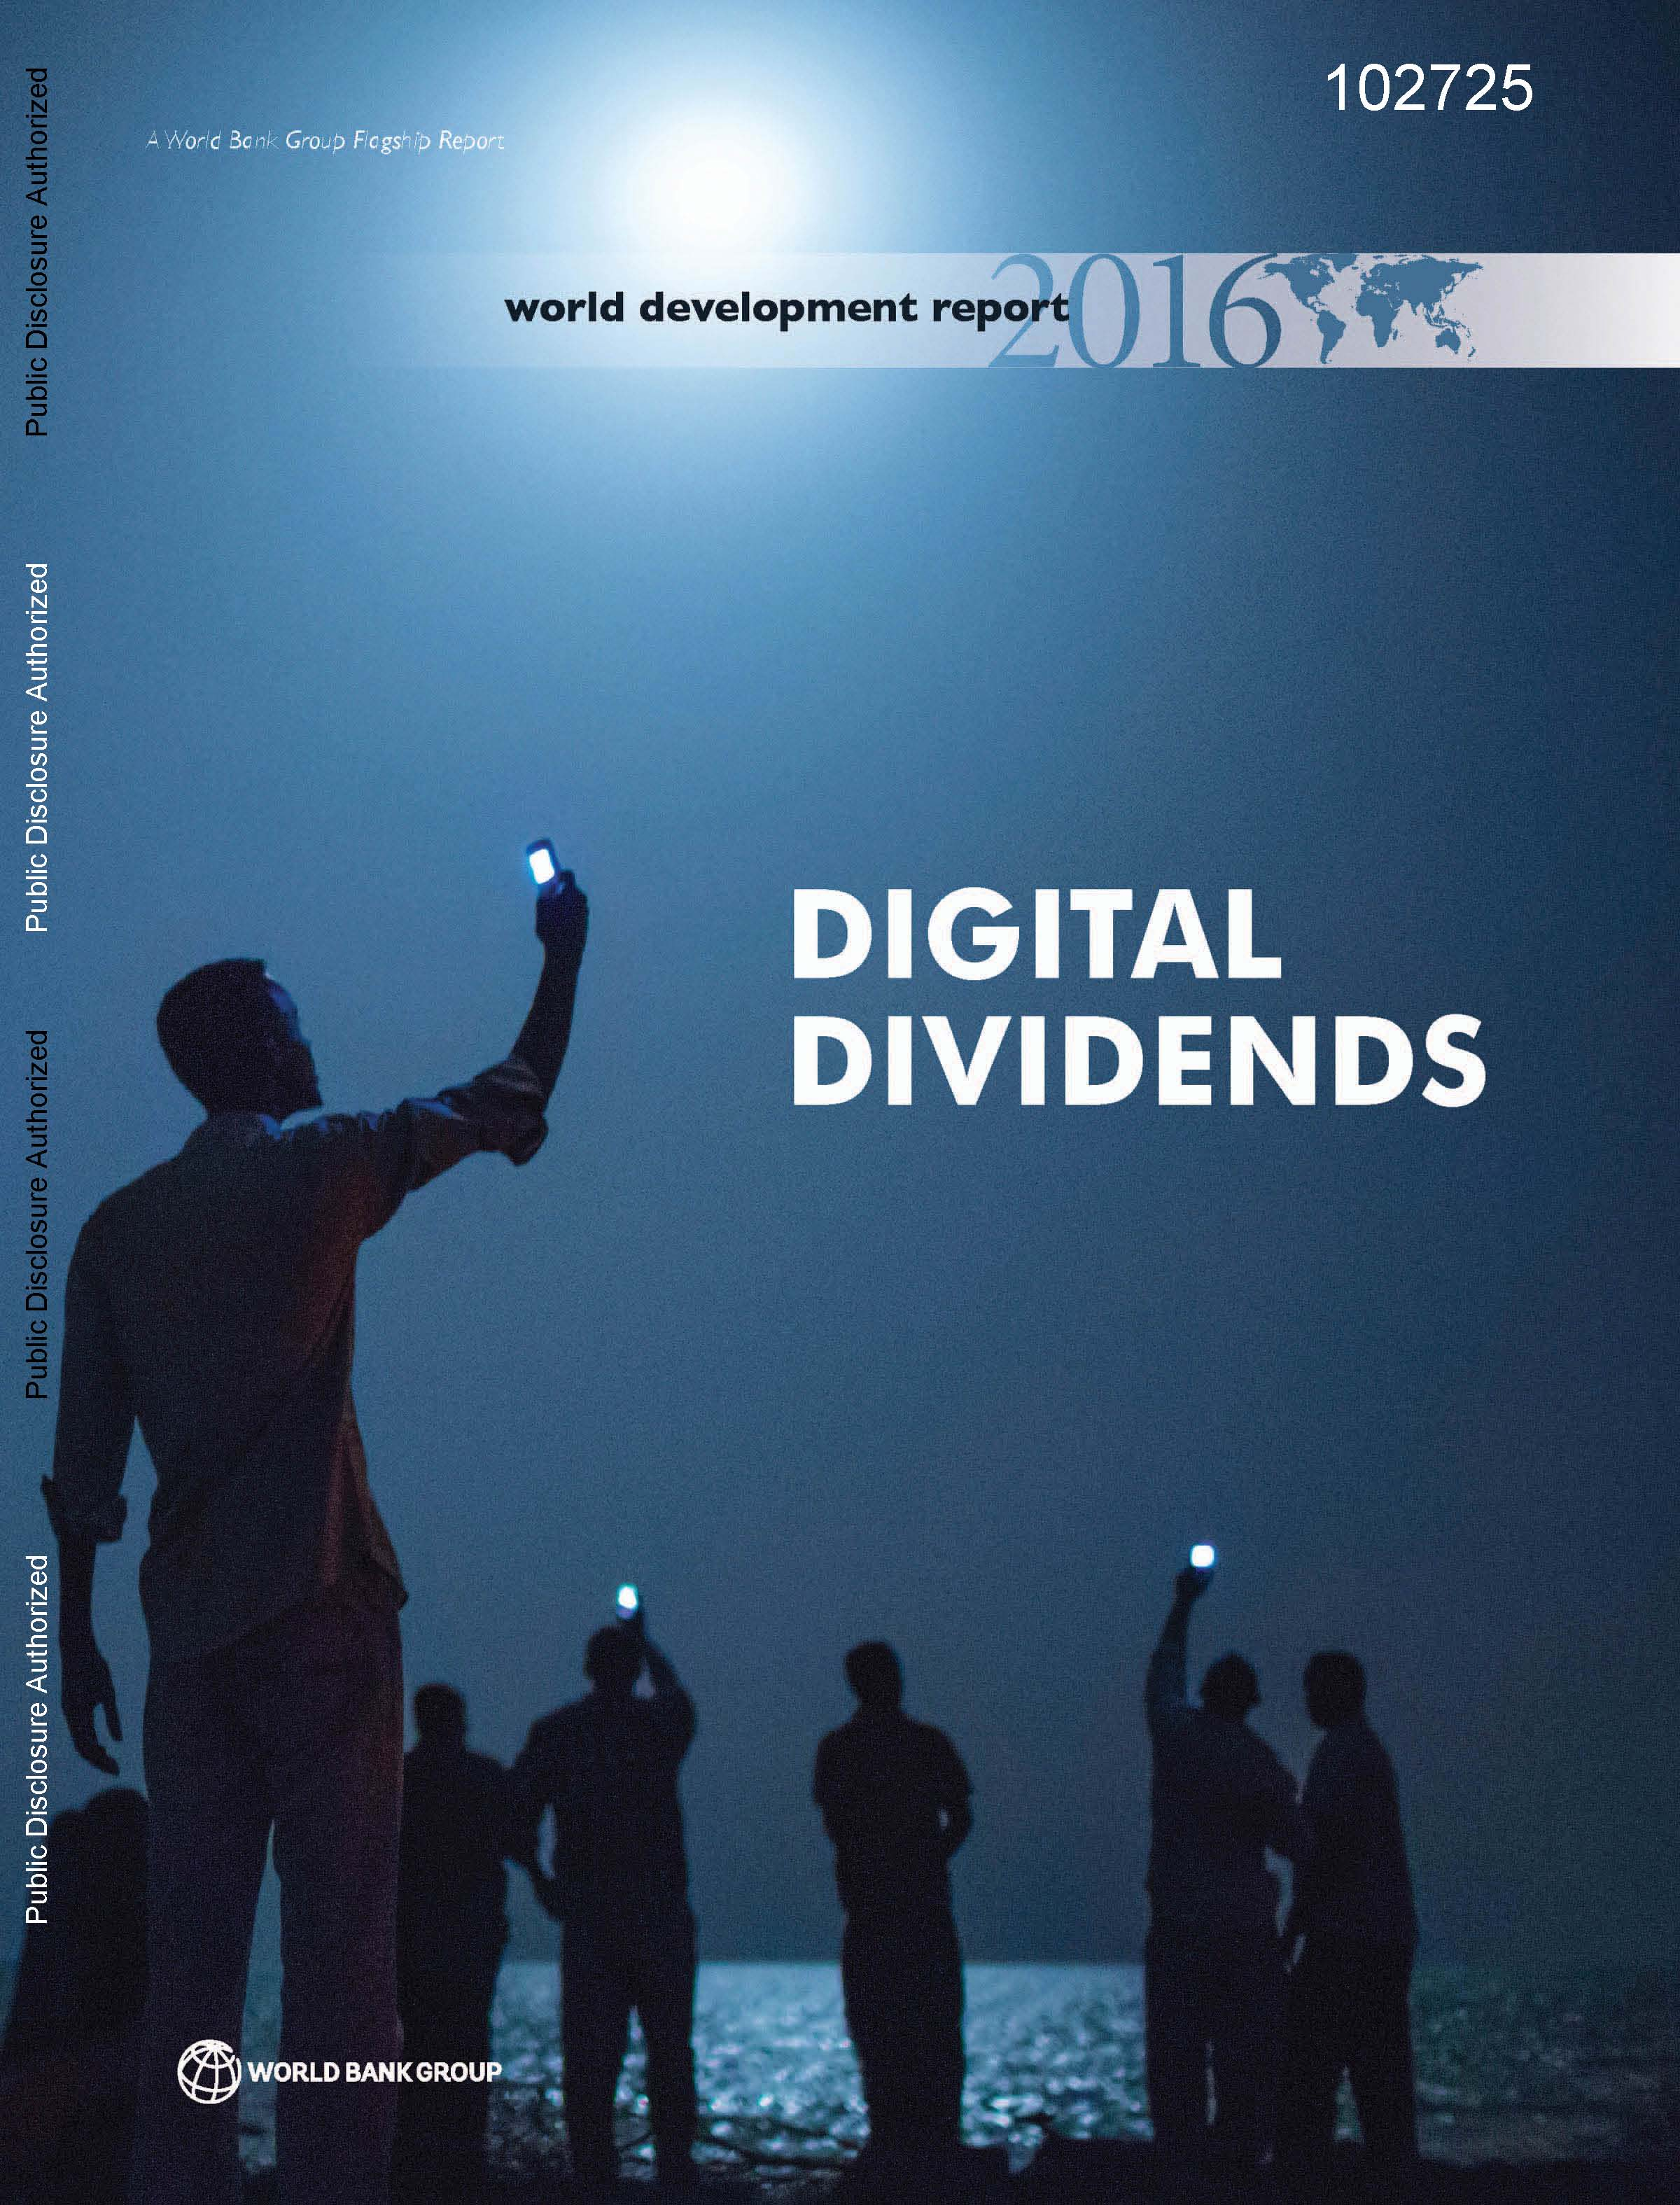 World Development Report 2016: Digital Divedends